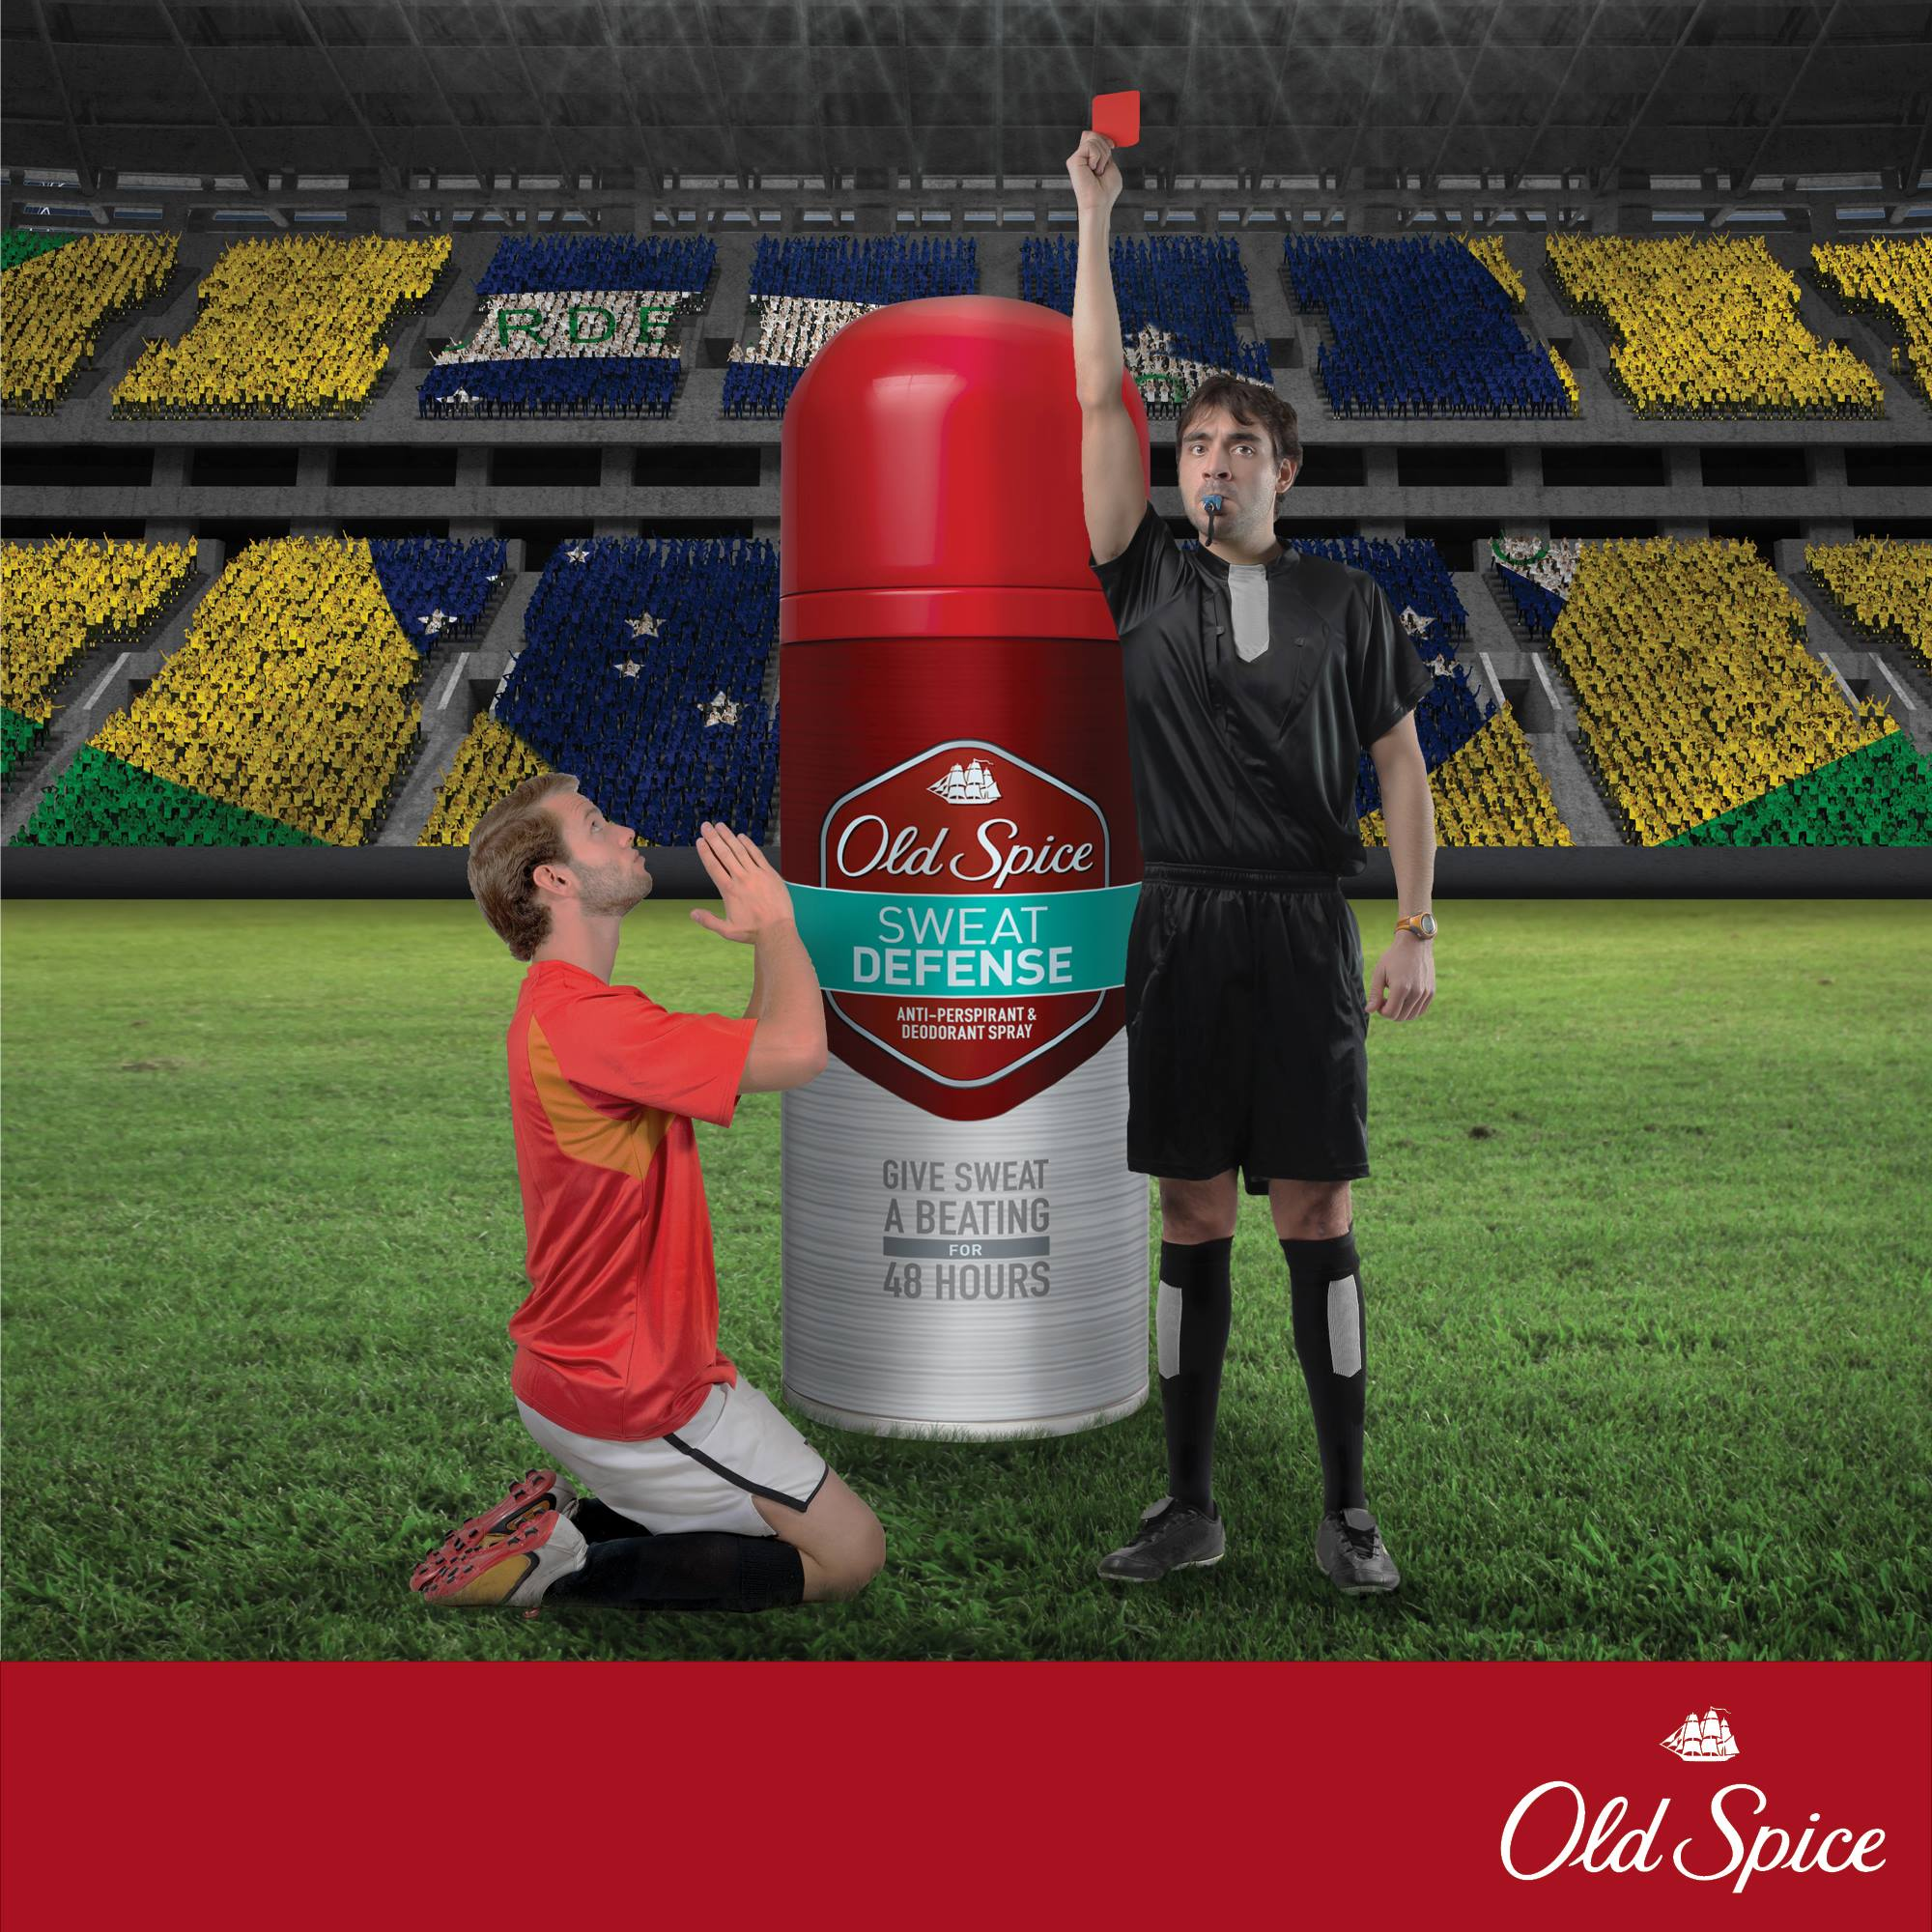 Gorilla social media marketing campaign poster of a football player getting red-carded with an Old Spice can in the background